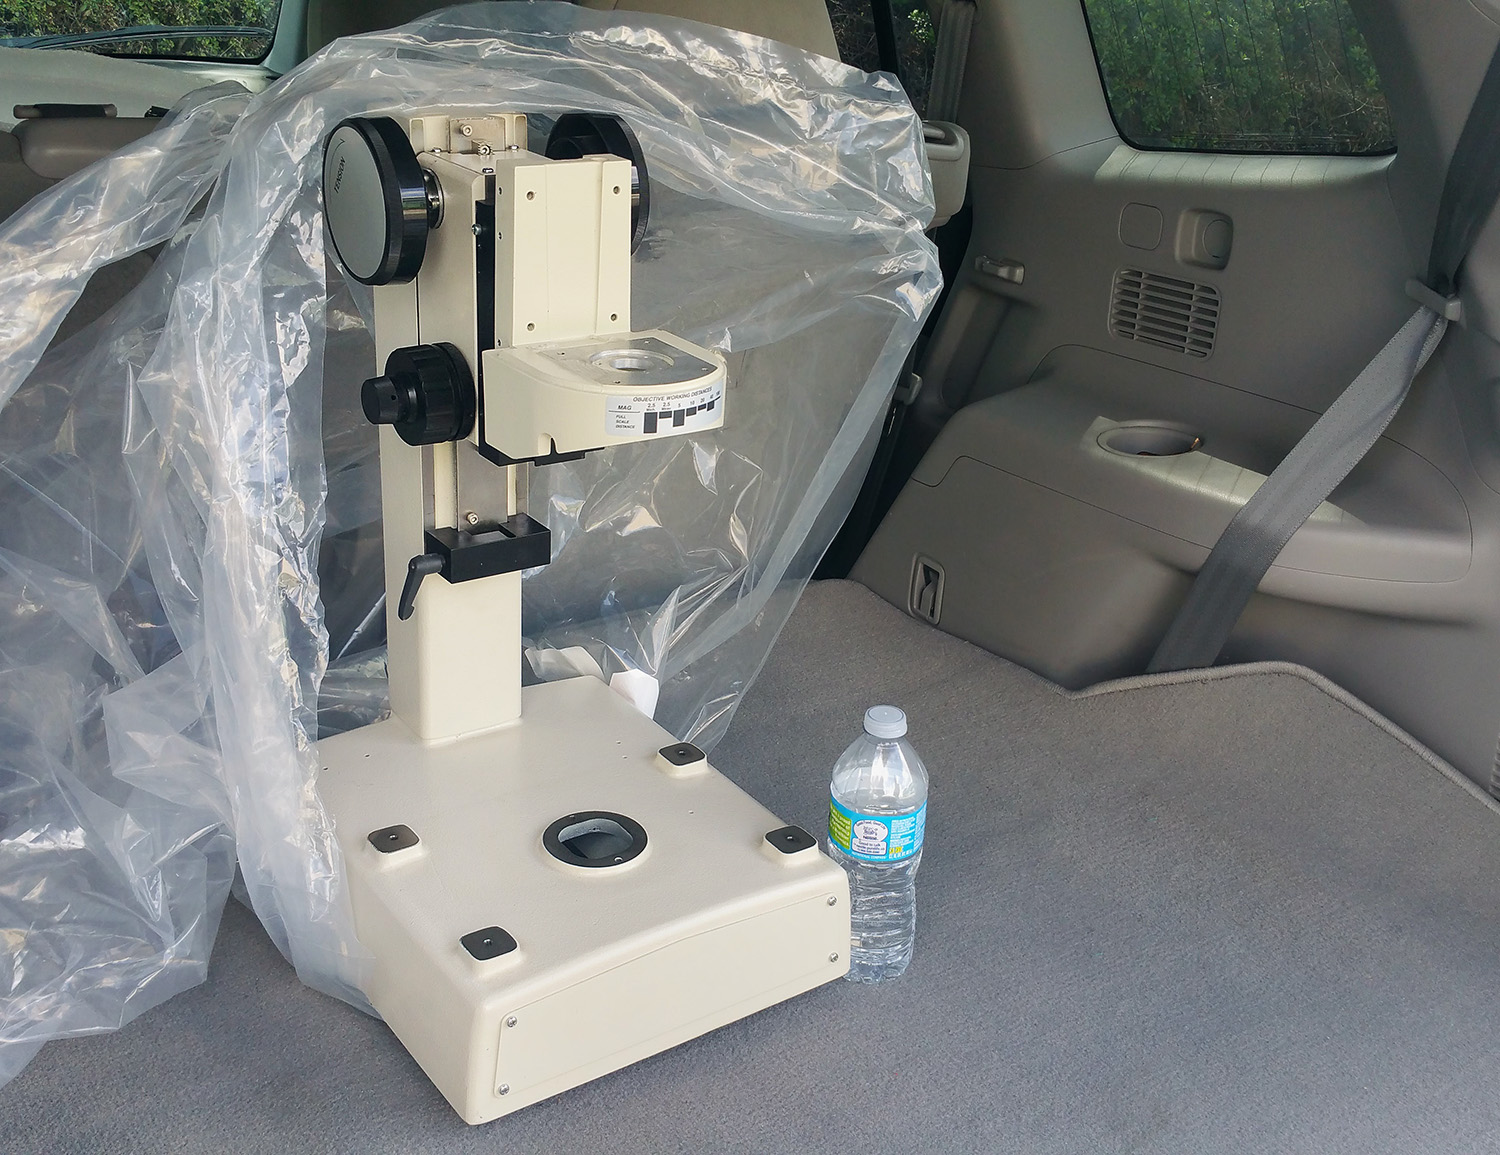 The Zygo NewView 200 Microscope Stand with bottled water for scale.